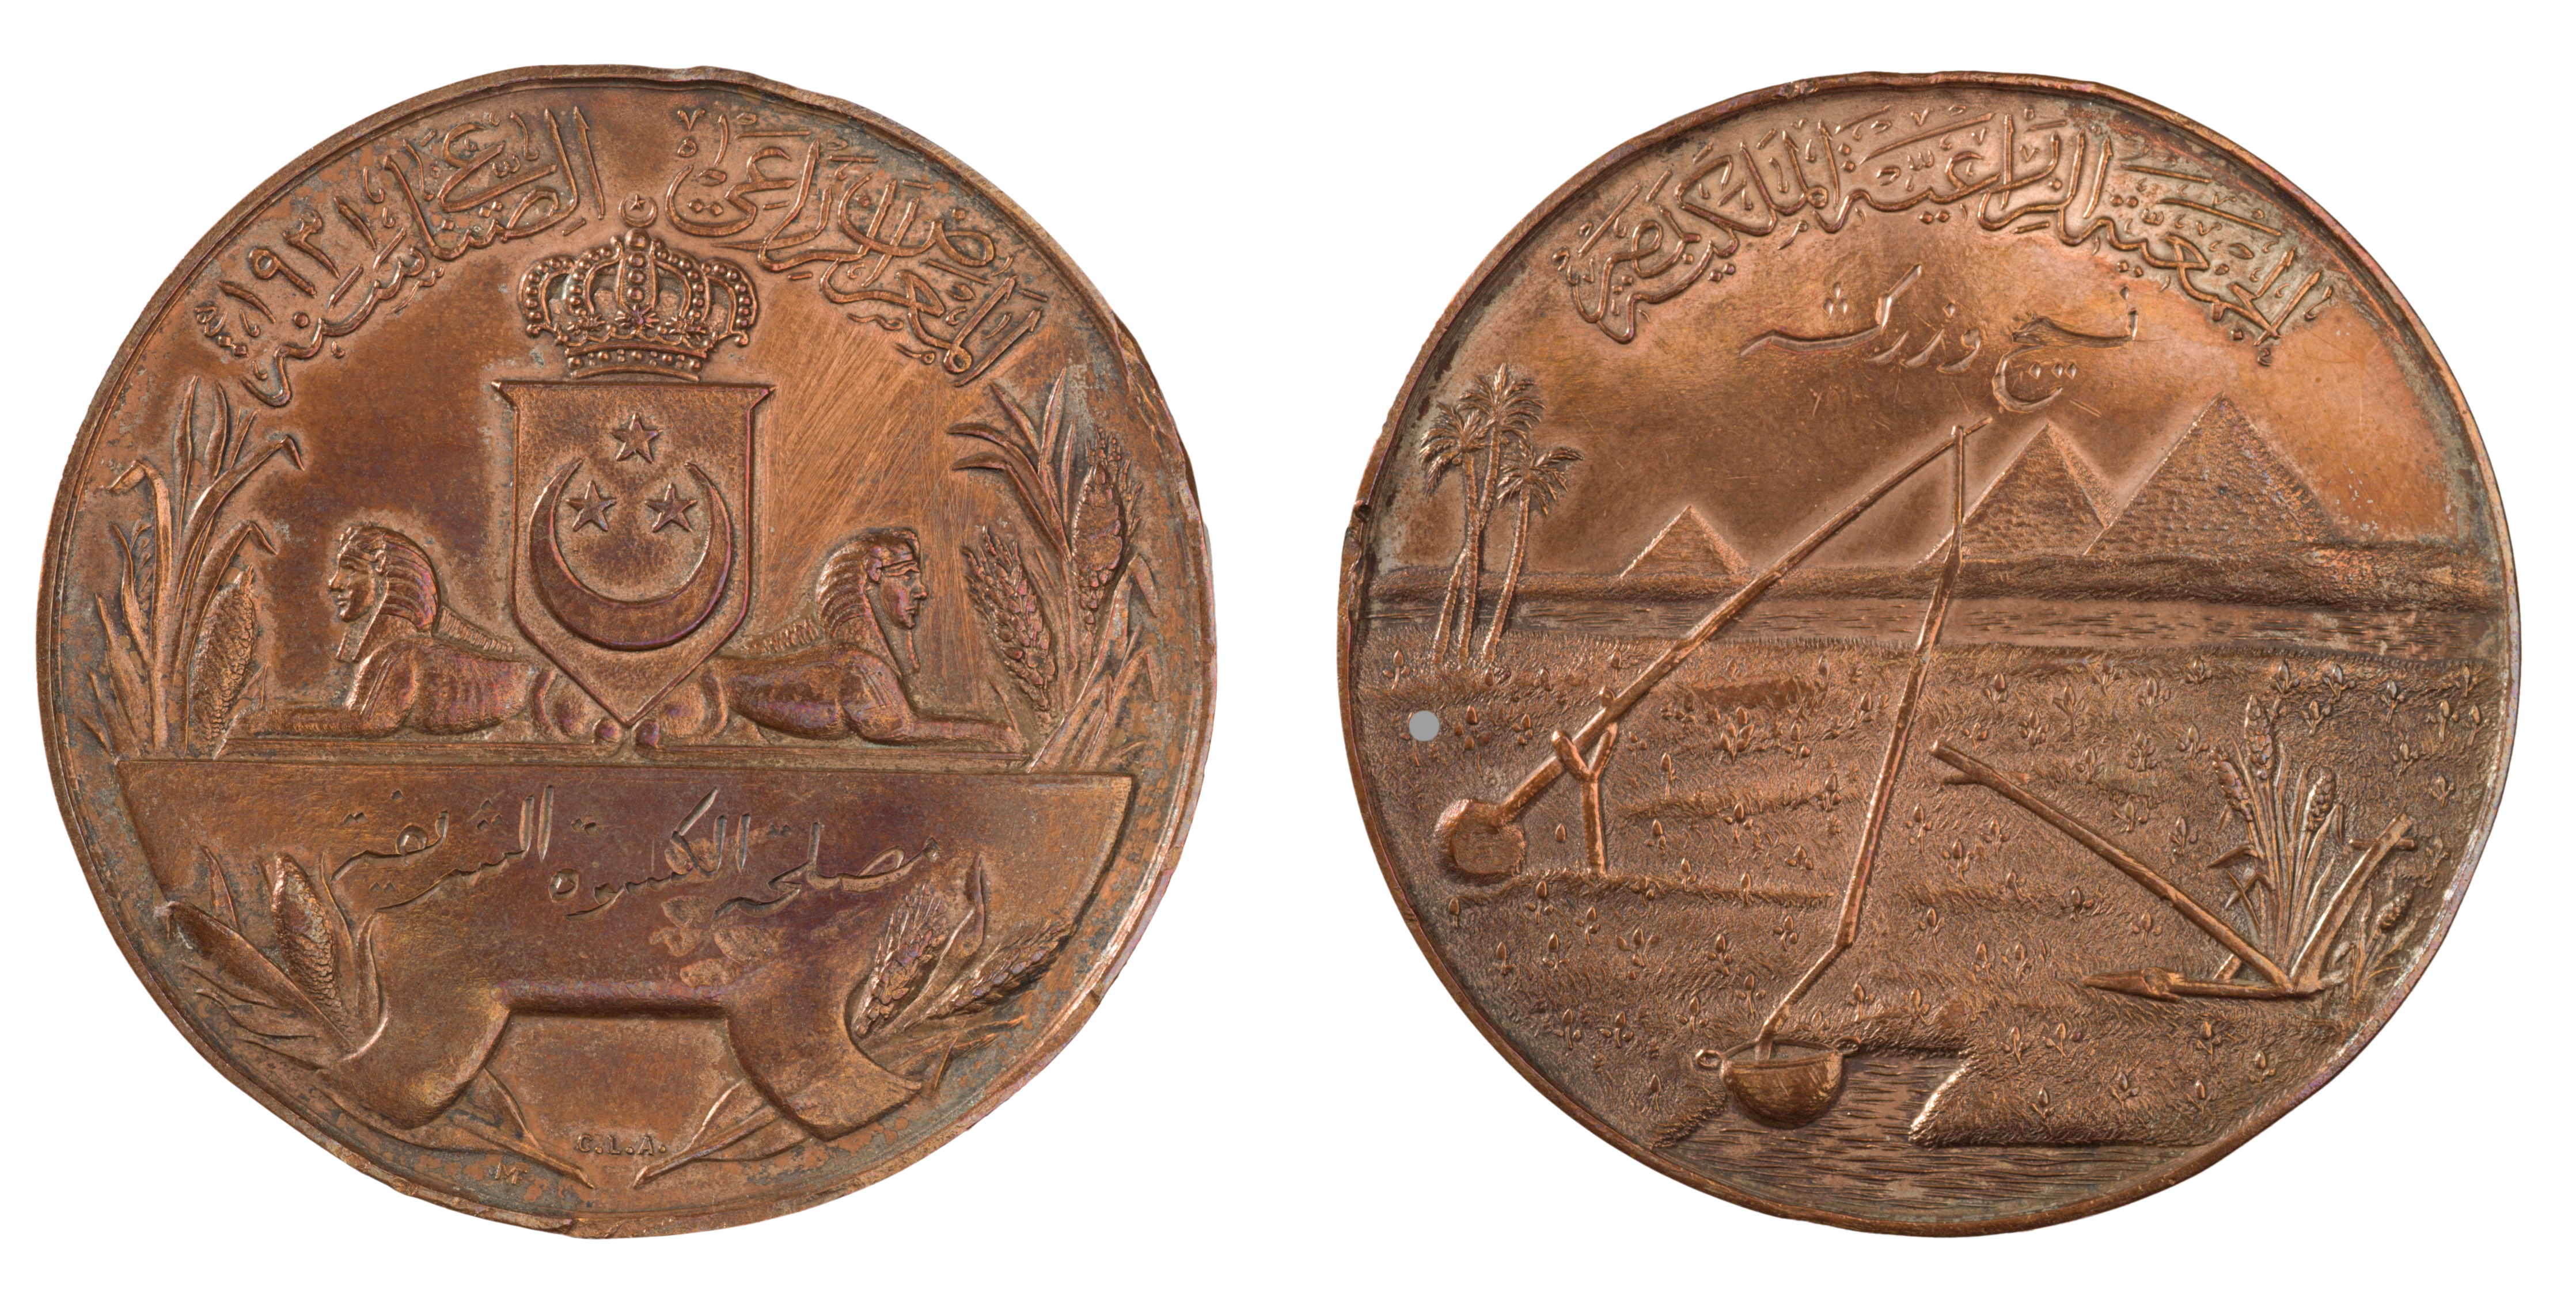 Medal awarded to Maslahat al-Kiswah al-Sharifah at the Agricultural & Industrial exhibition